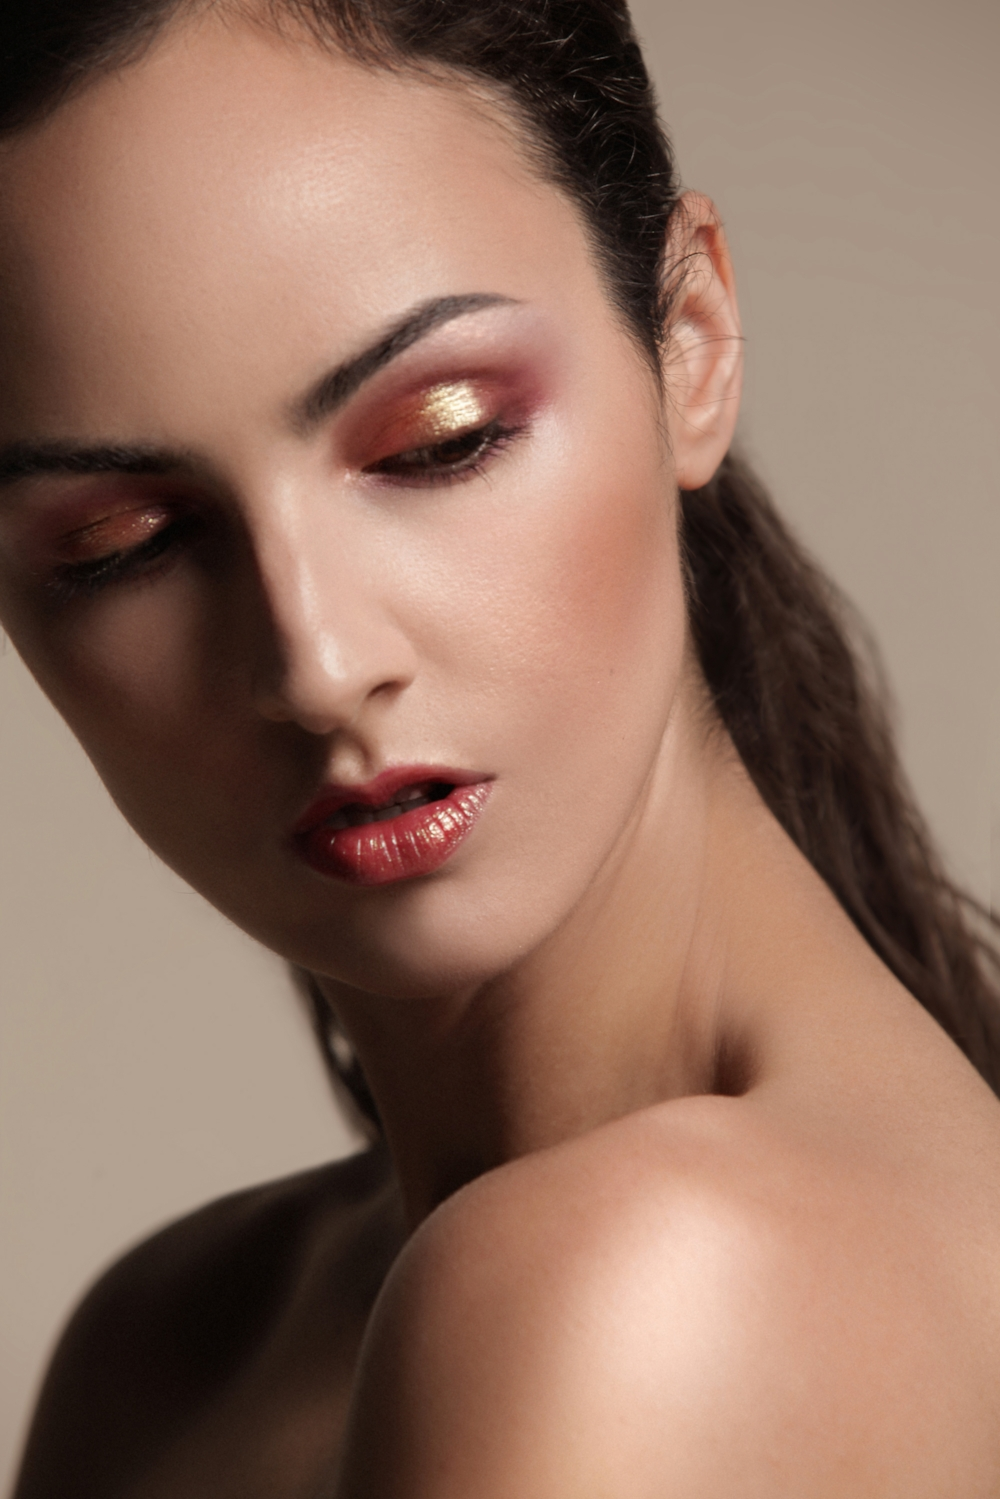 Blush Used is Glossier Cloud Paints in the color Haze  Makeup By Perryn Morris Photo by Roy Cox  Modeled by Megan G.